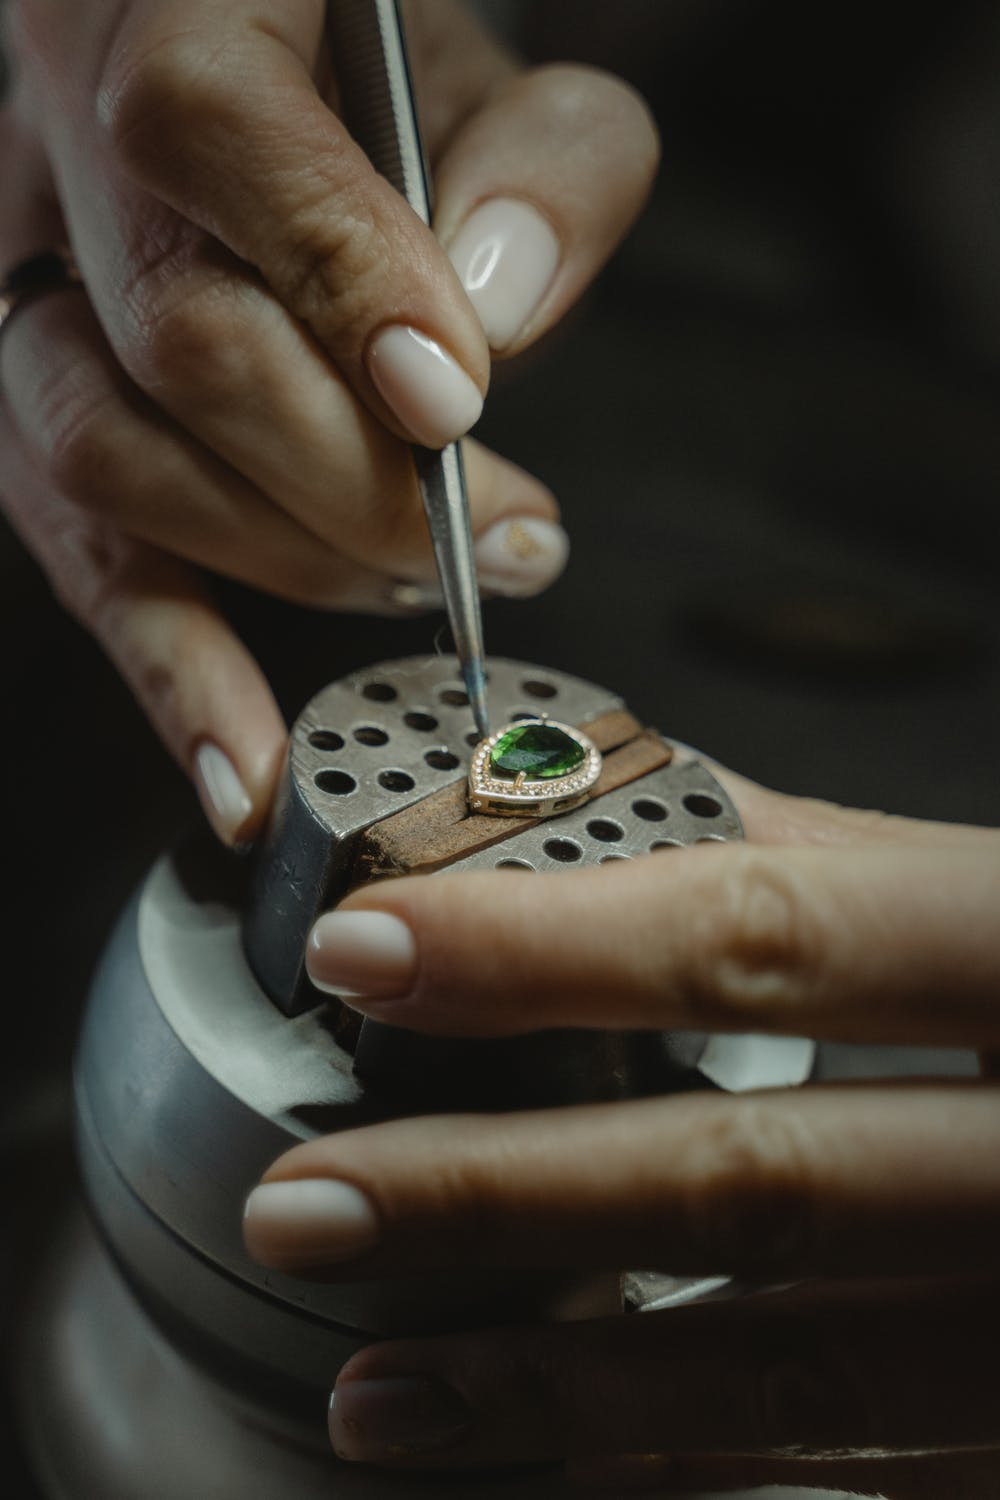 The jeweler said the earrings were valuable | Source: Unsplash